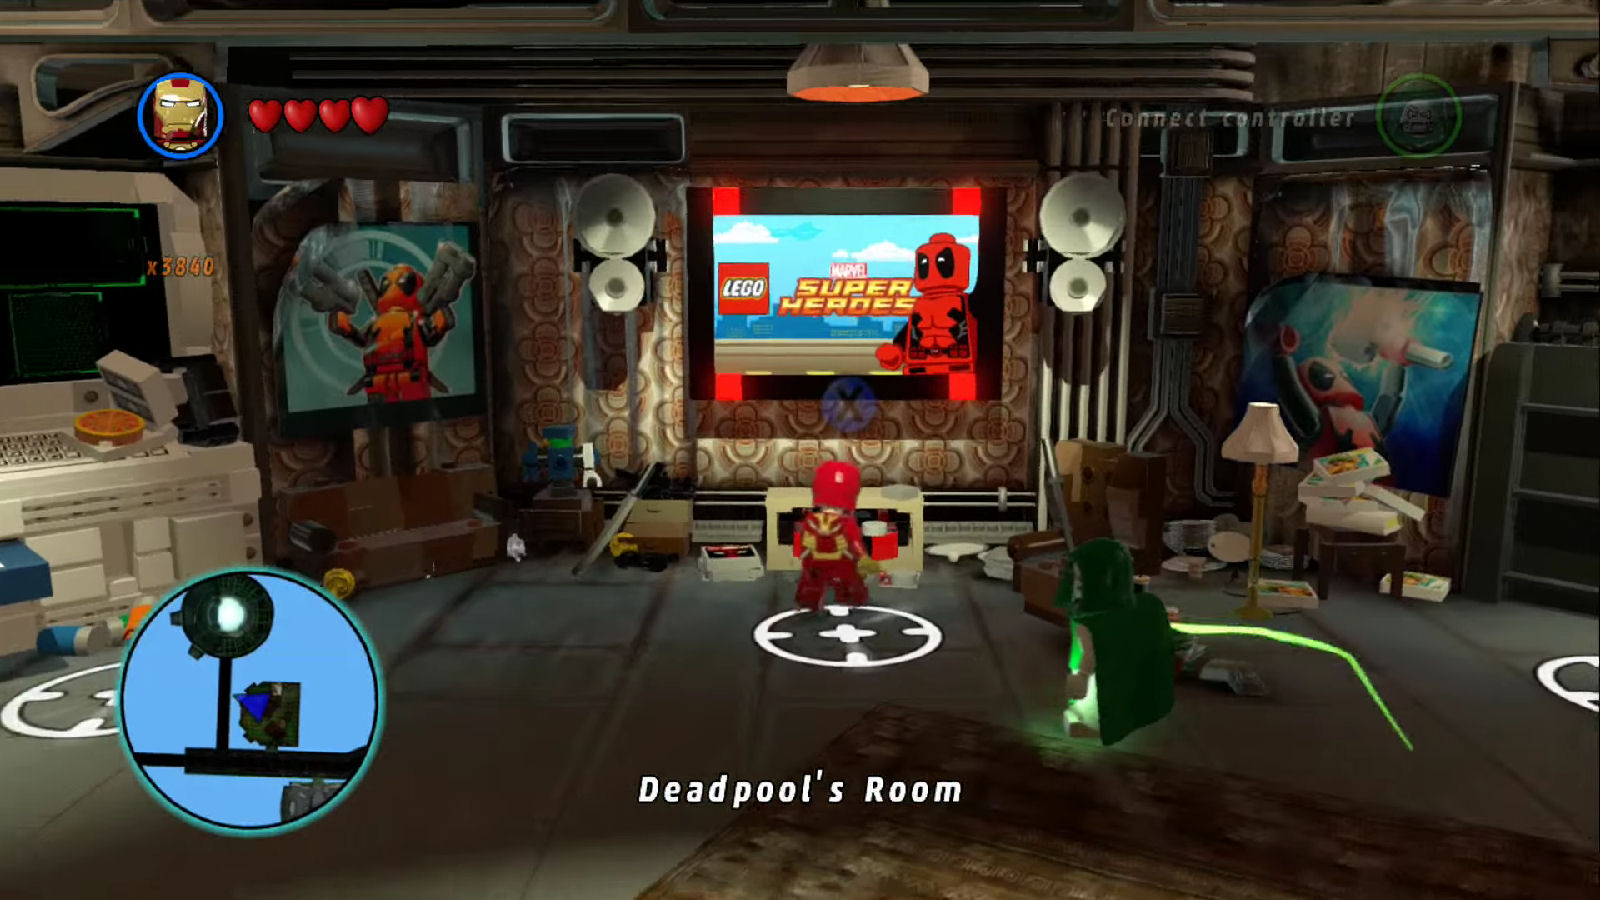 Deadpool Games Free To Play